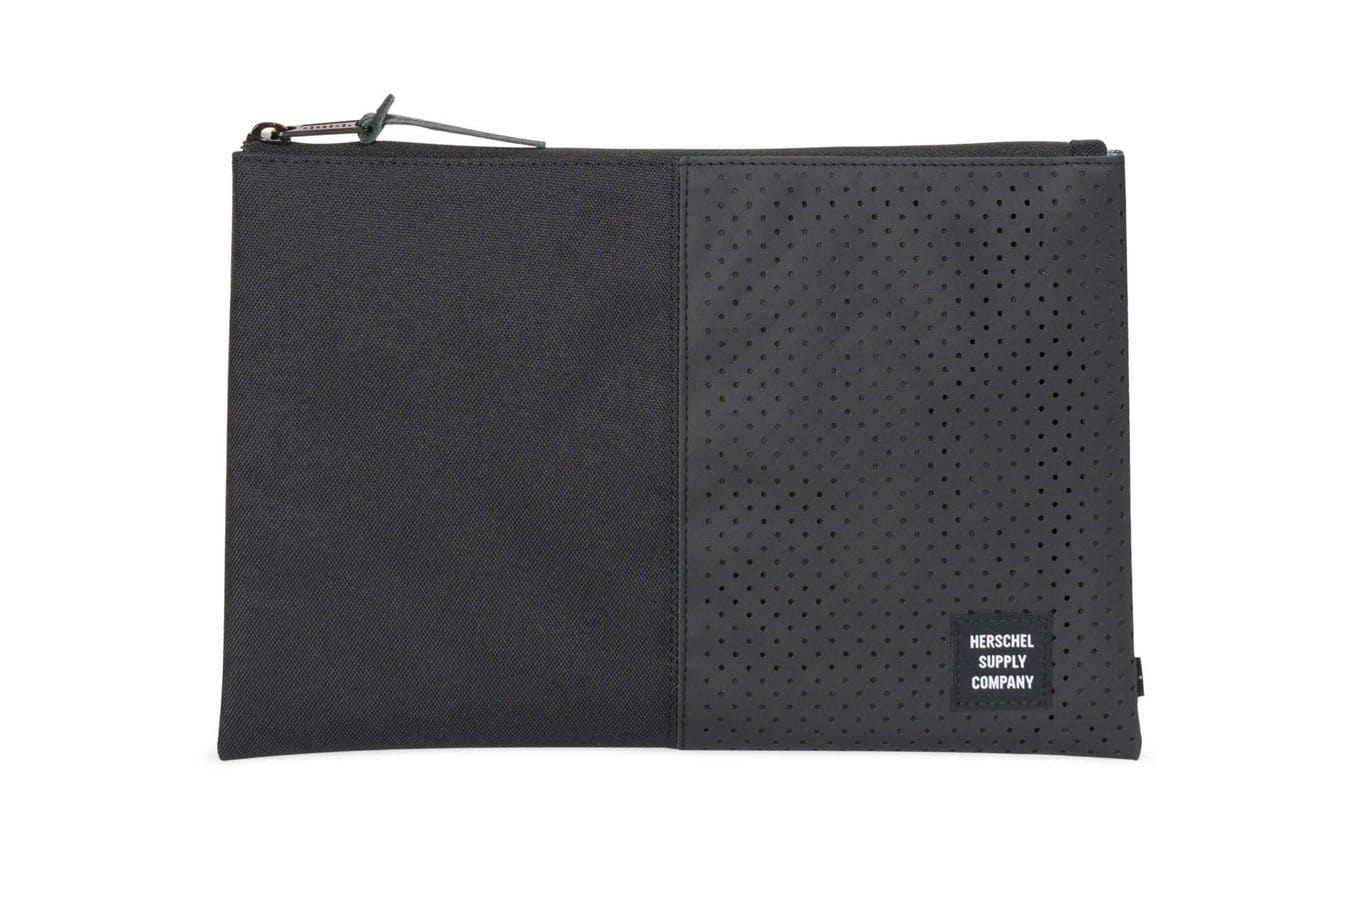 NETWORK L ASPECT POLY ACCESSORIES HERSCHEL BLACK ONE SIZE